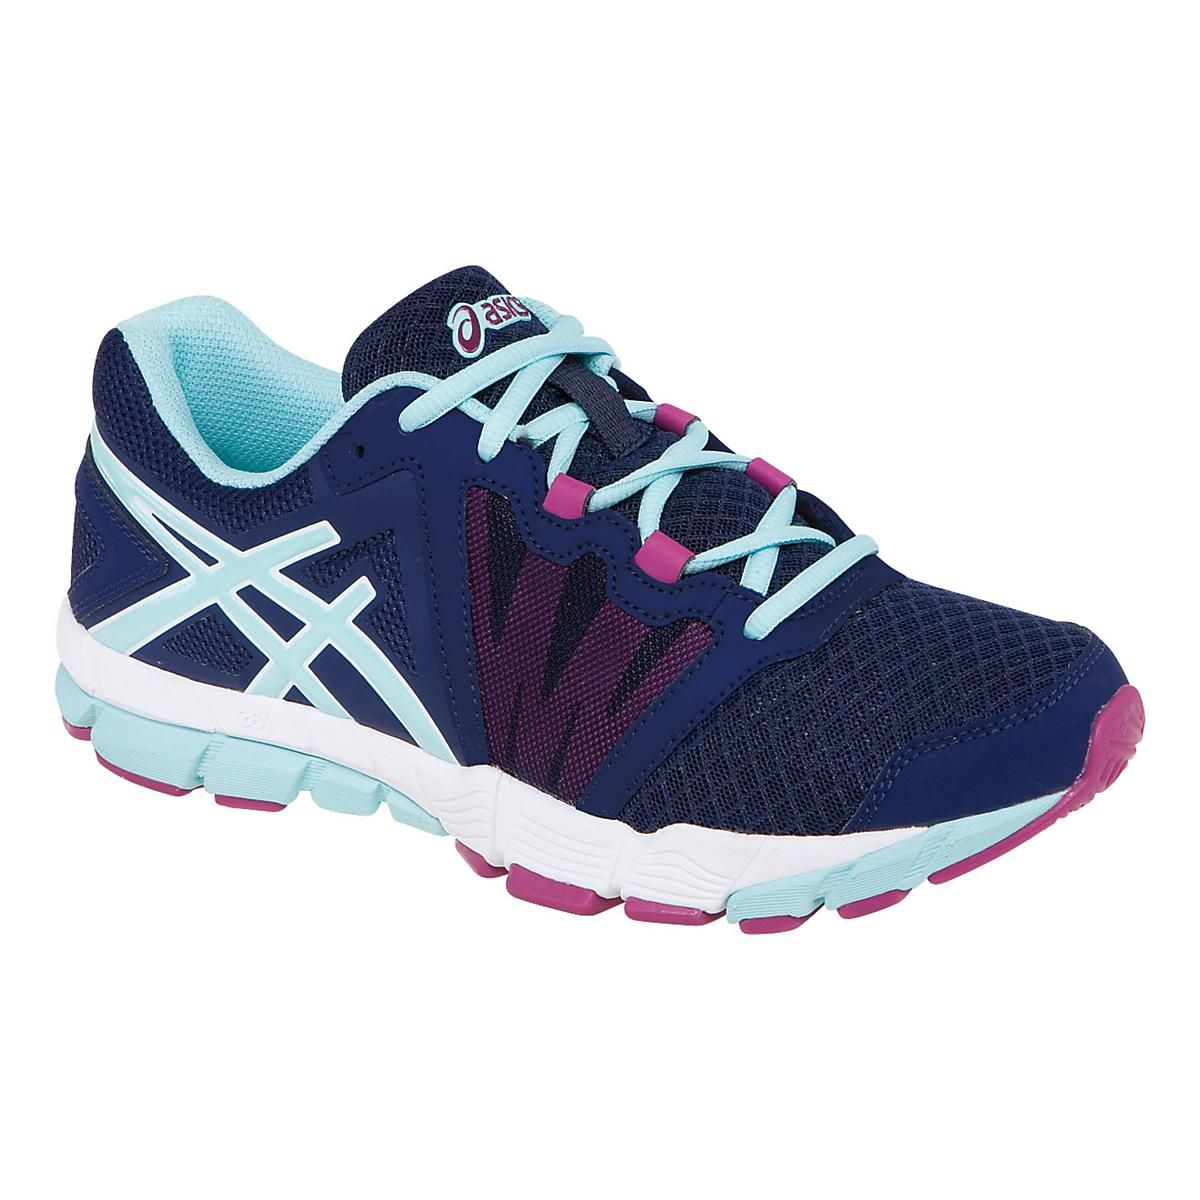 378a775891b9 Enjoy the best of both worlds all wrapped up into one fabulous shoe with  the Womens ASICS GEL-Craze TR